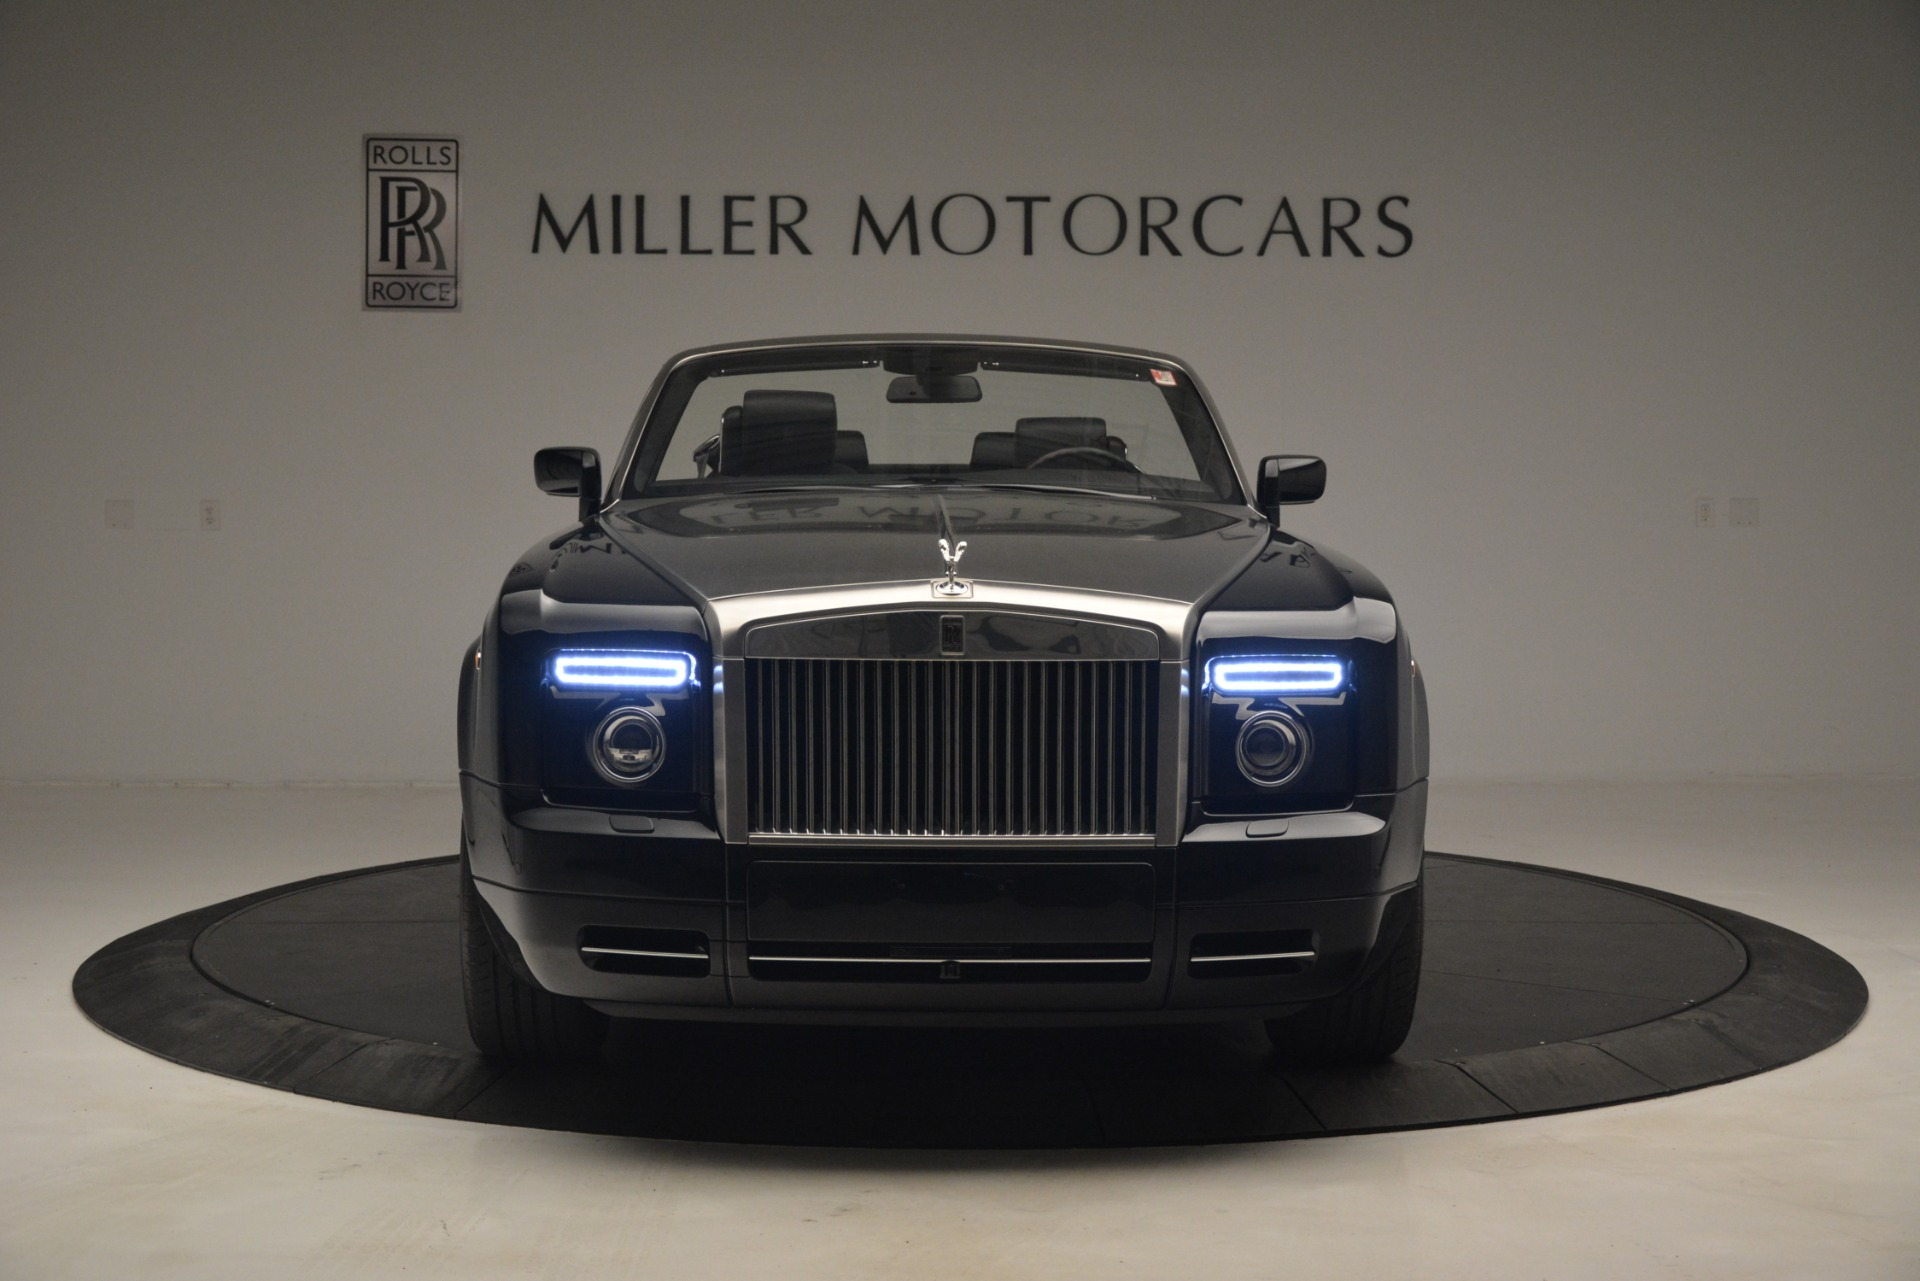 Used 2008 Rolls-Royce Phantom Drophead Coupe  For Sale In Westport, CT 3000_p8